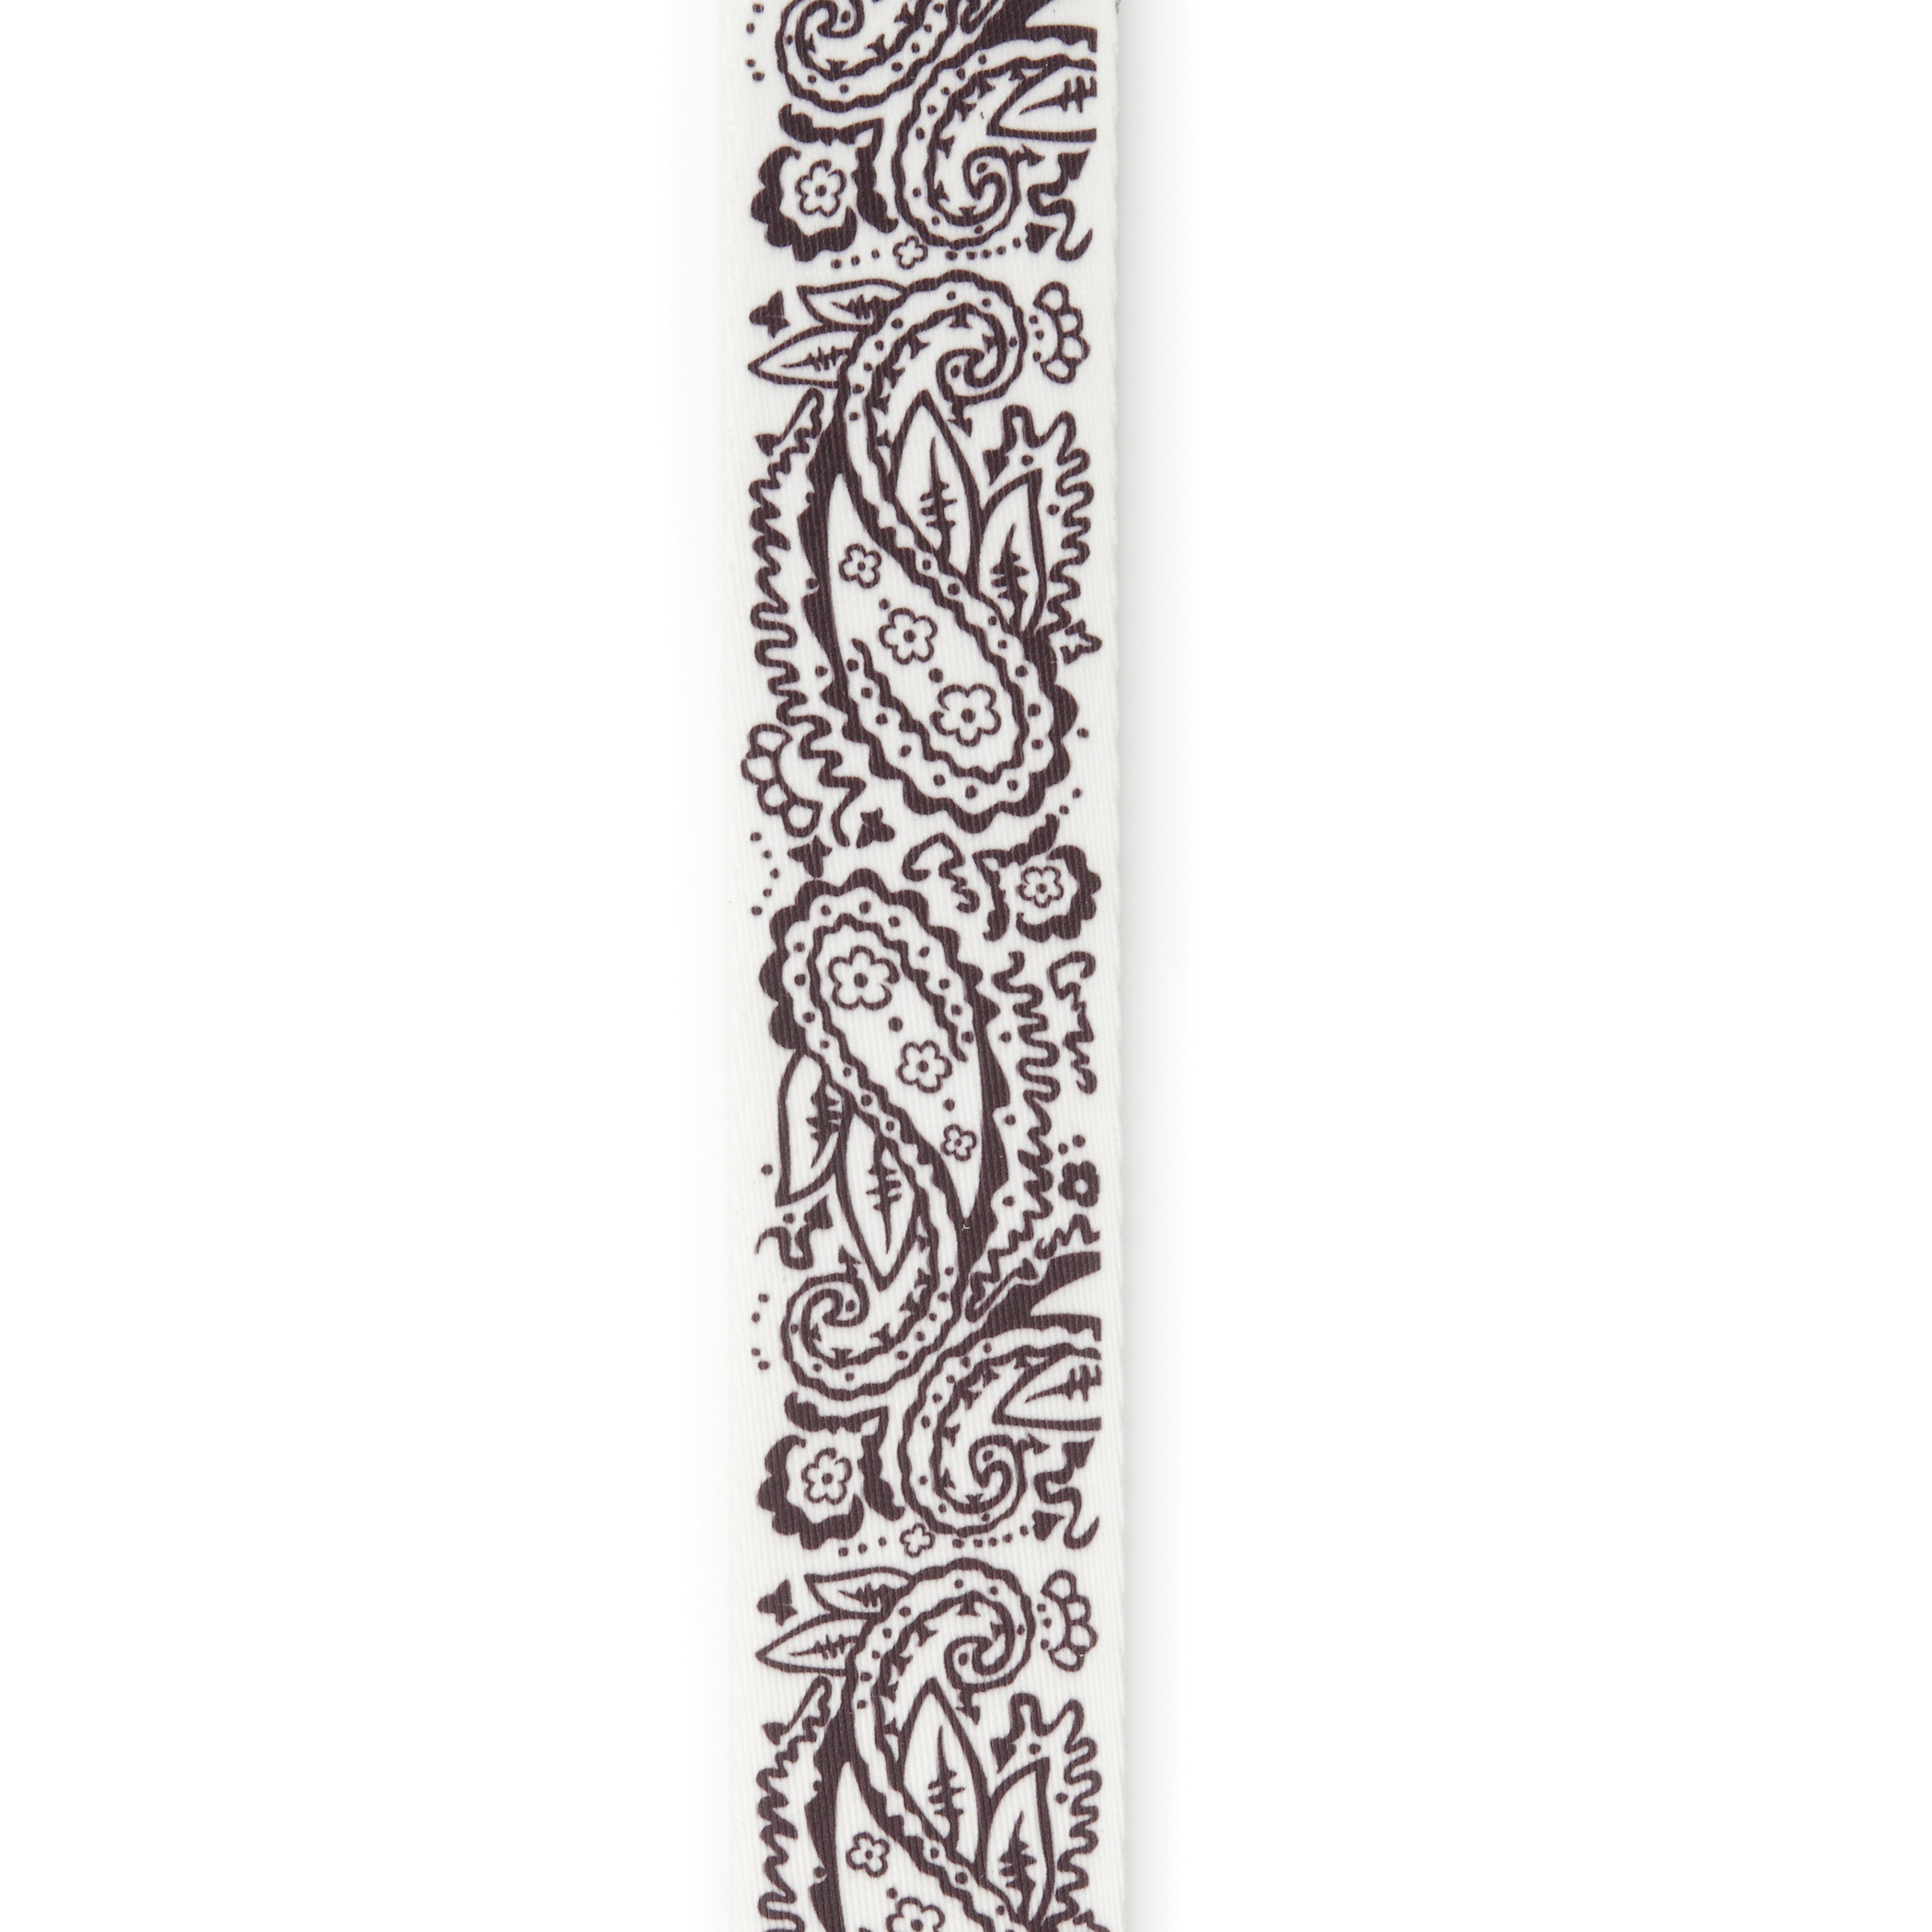 2 Woven Guitar Strap, Paisley - White, by D'Addario